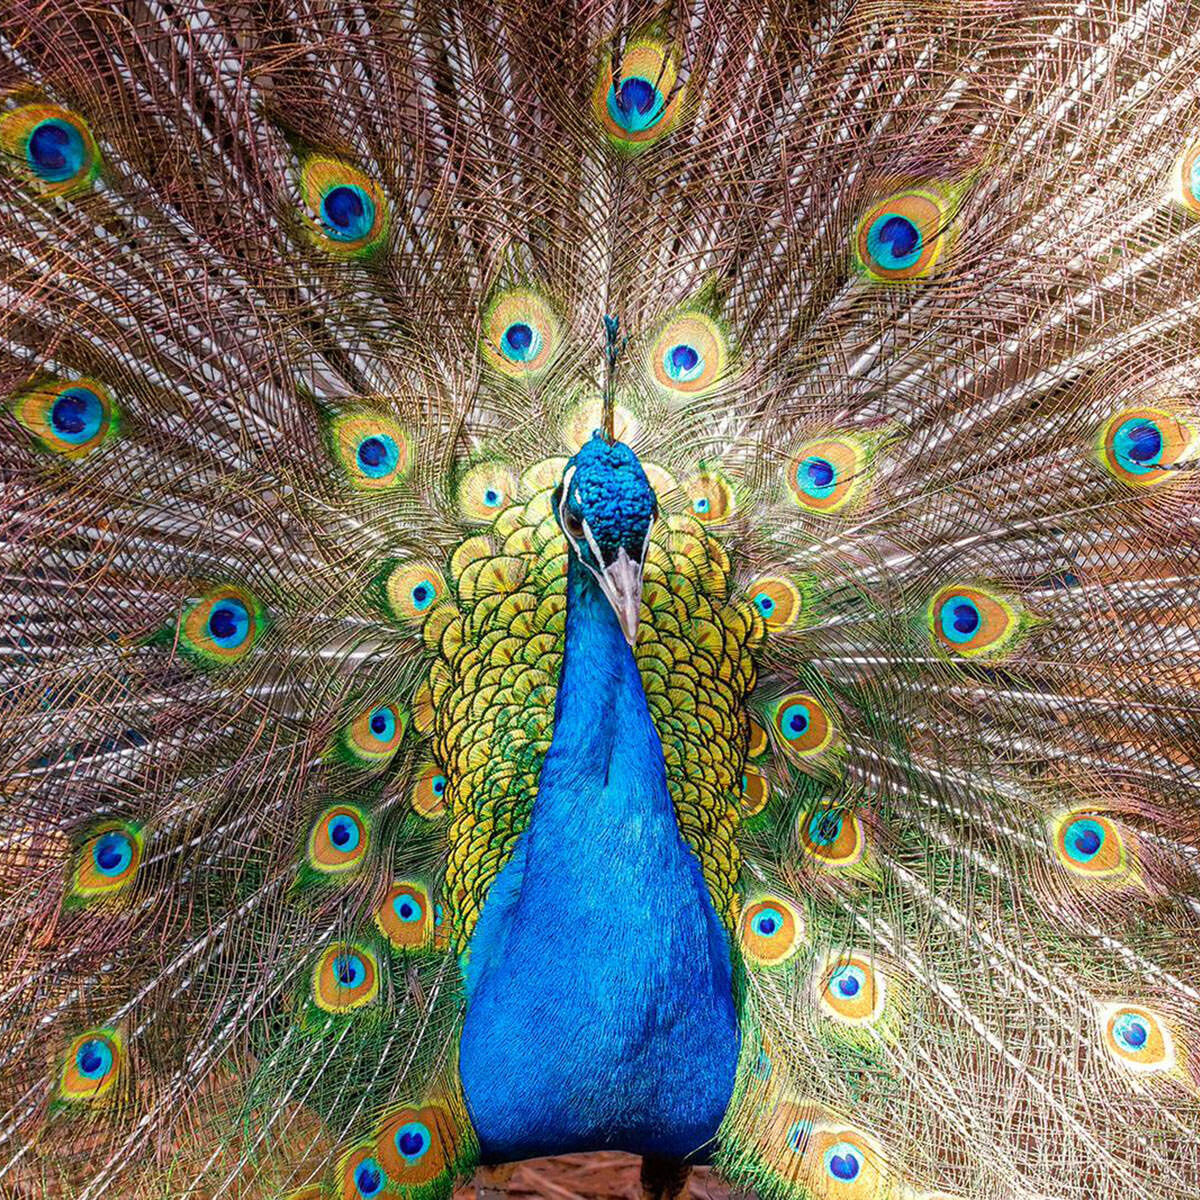 A fine art photograph of a peacock titled Mesmerize.